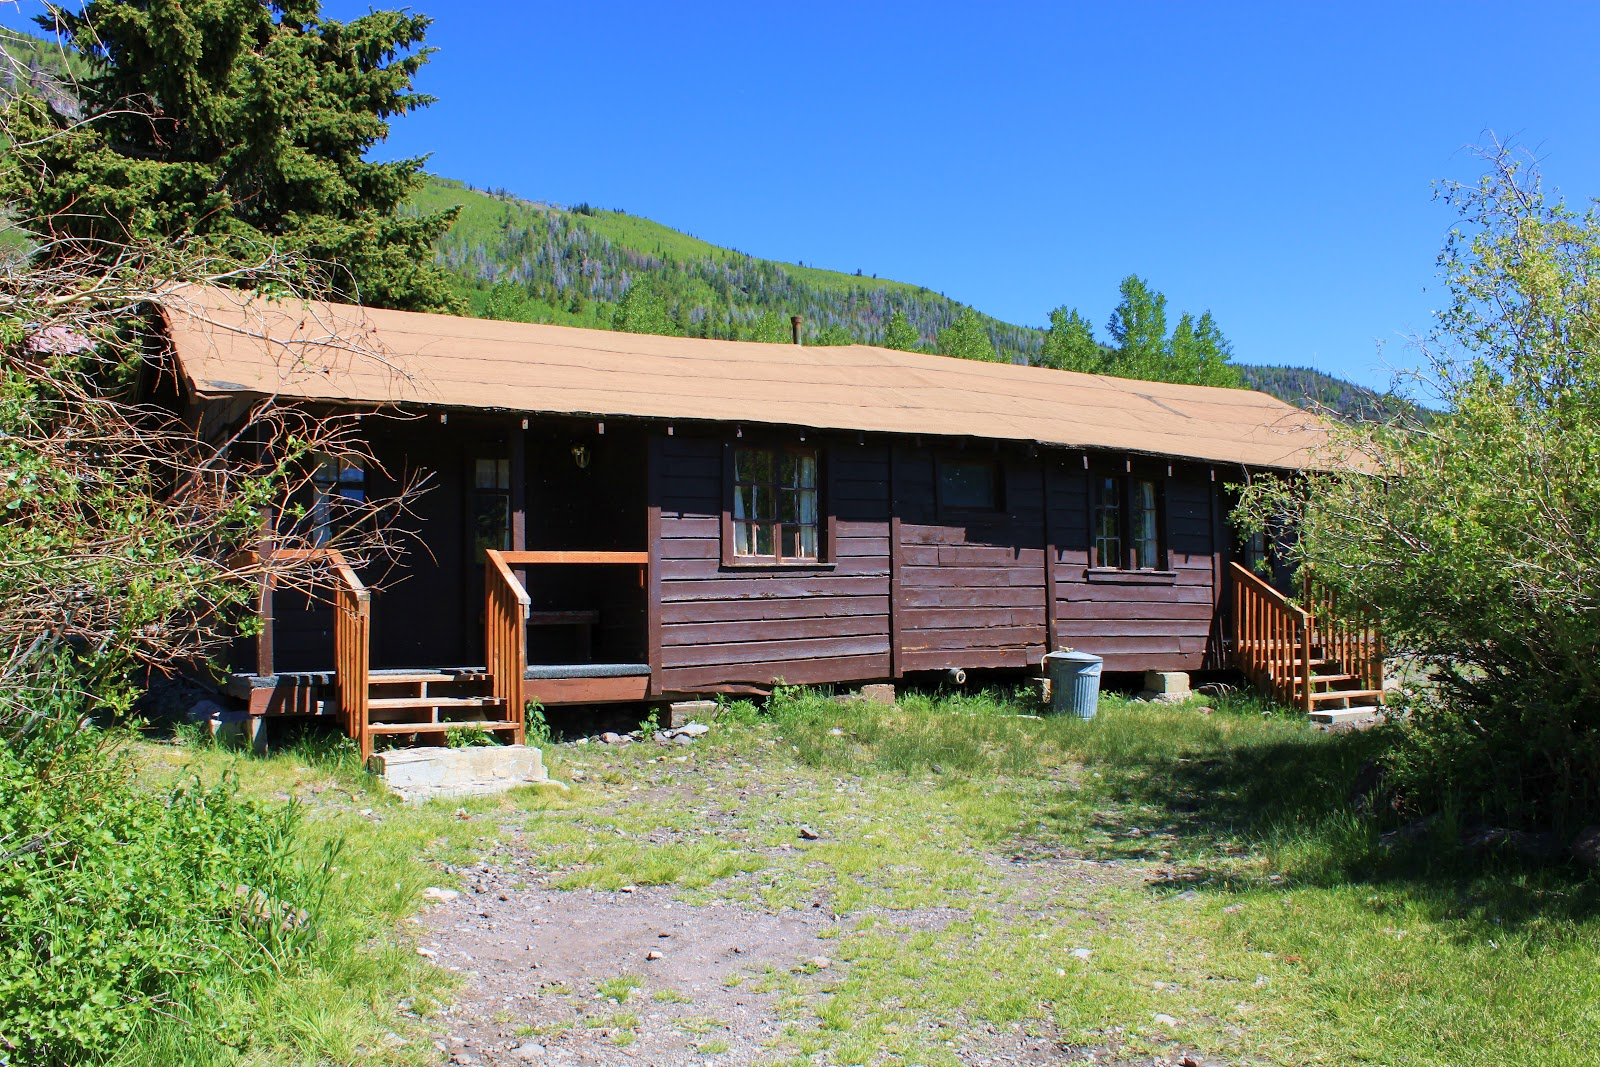 duck creek real cabins listings estate in htm the sale village utah for southern